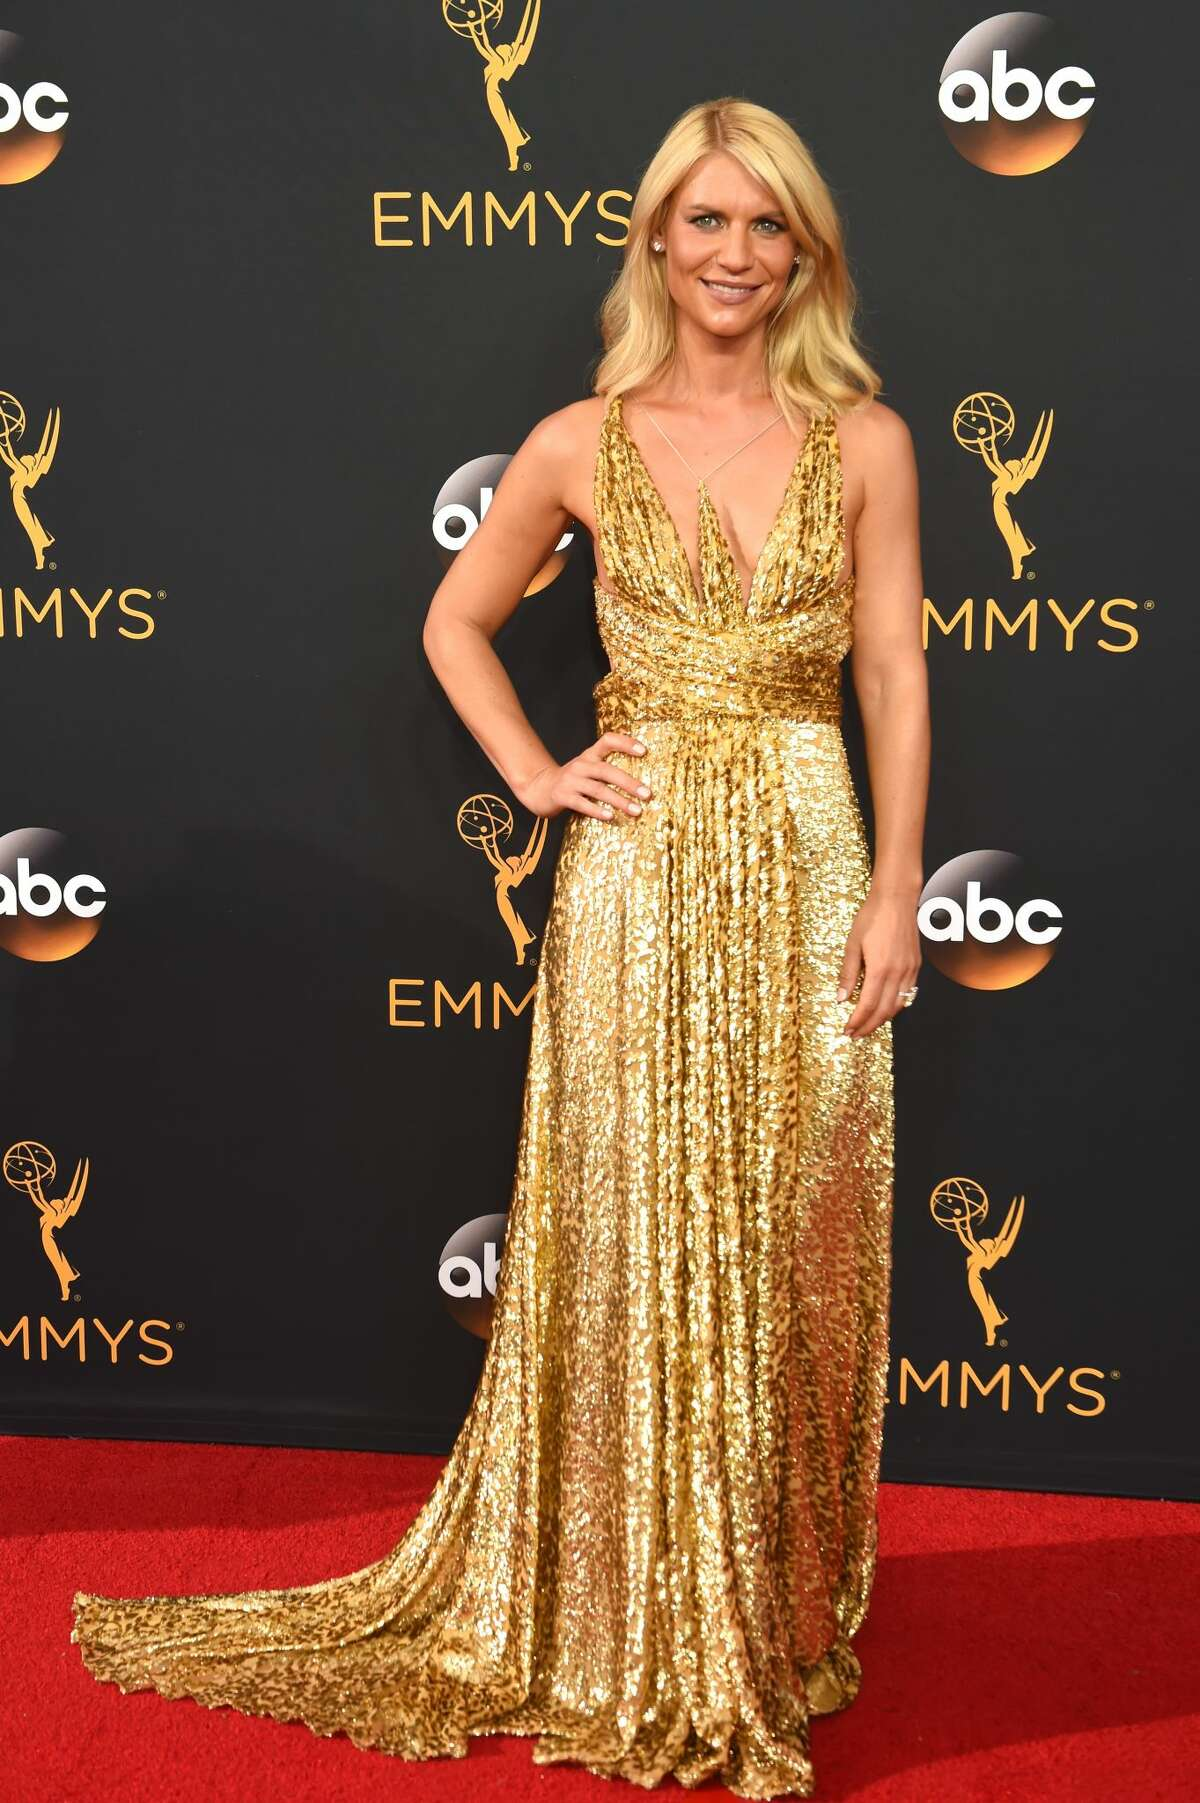 Actress Claire Danes attends the 68th Annual Primetime Emmy Awards at Microsoft Theater on September 18, 2016 in Los Angeles.